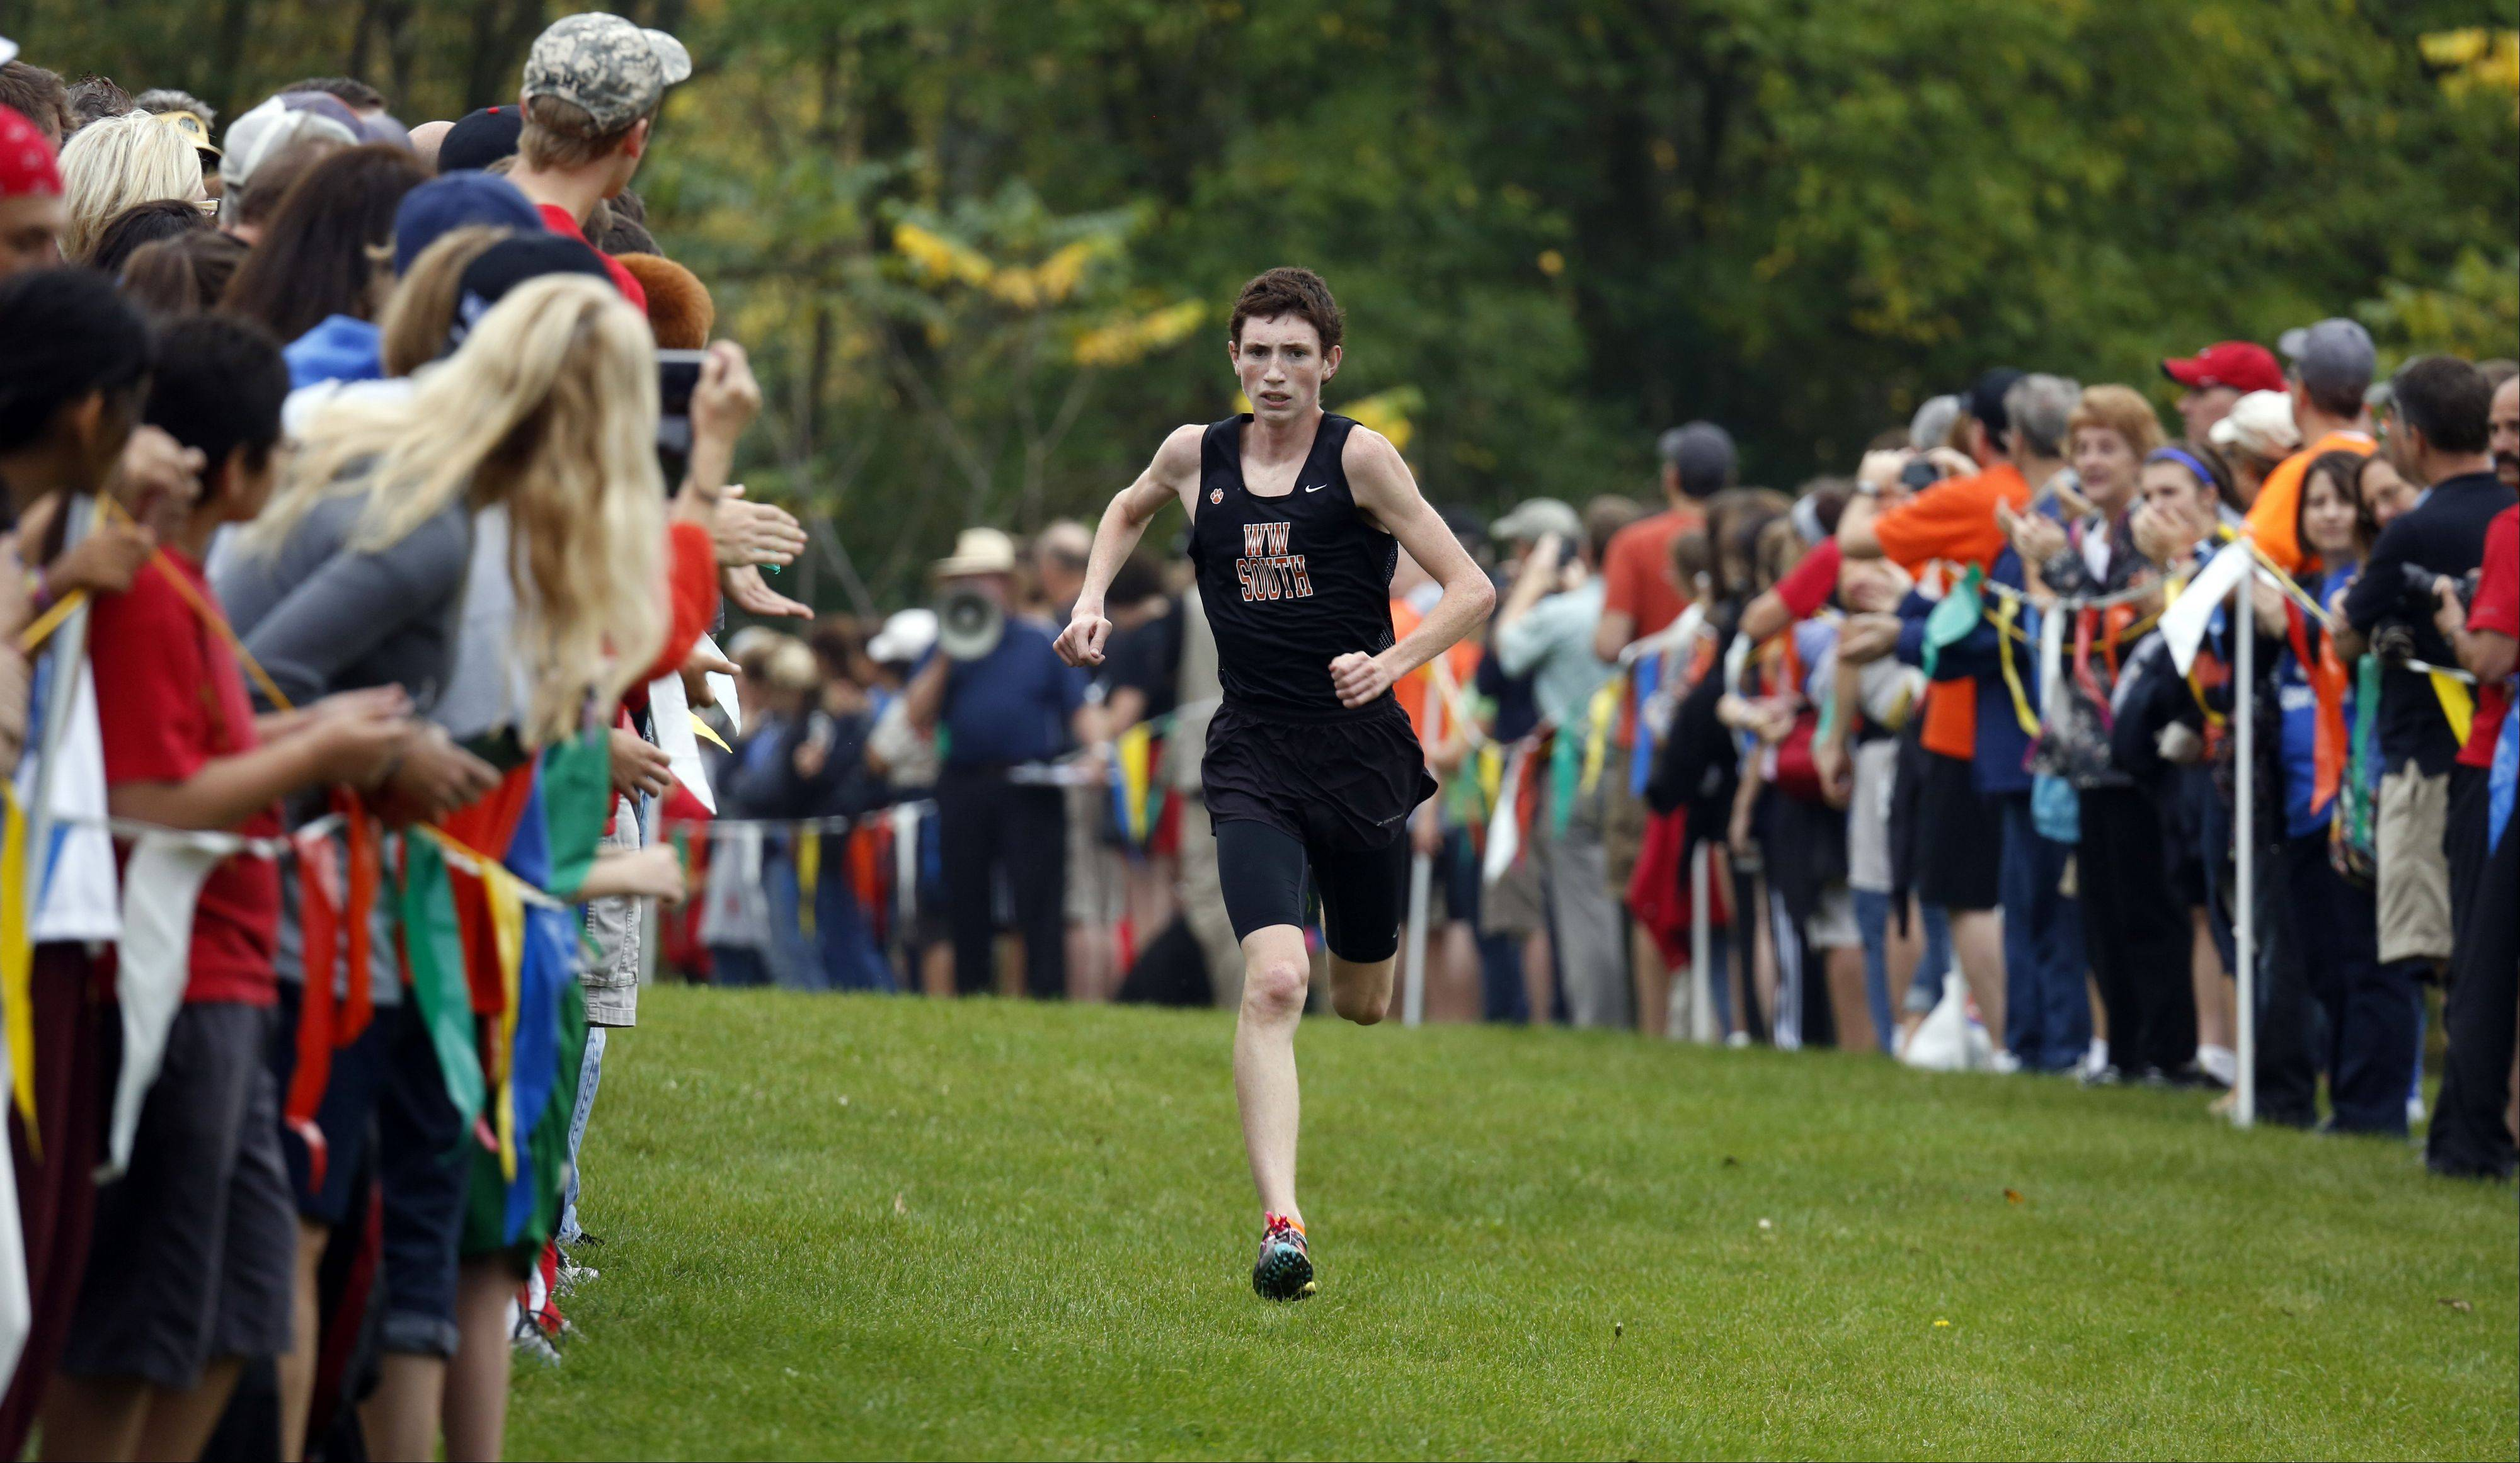 Wheaton Warrenville South's Nolan McKenna makes his way to first place during boys cross country at LeRoy Oakes in St. Charles Saturday.